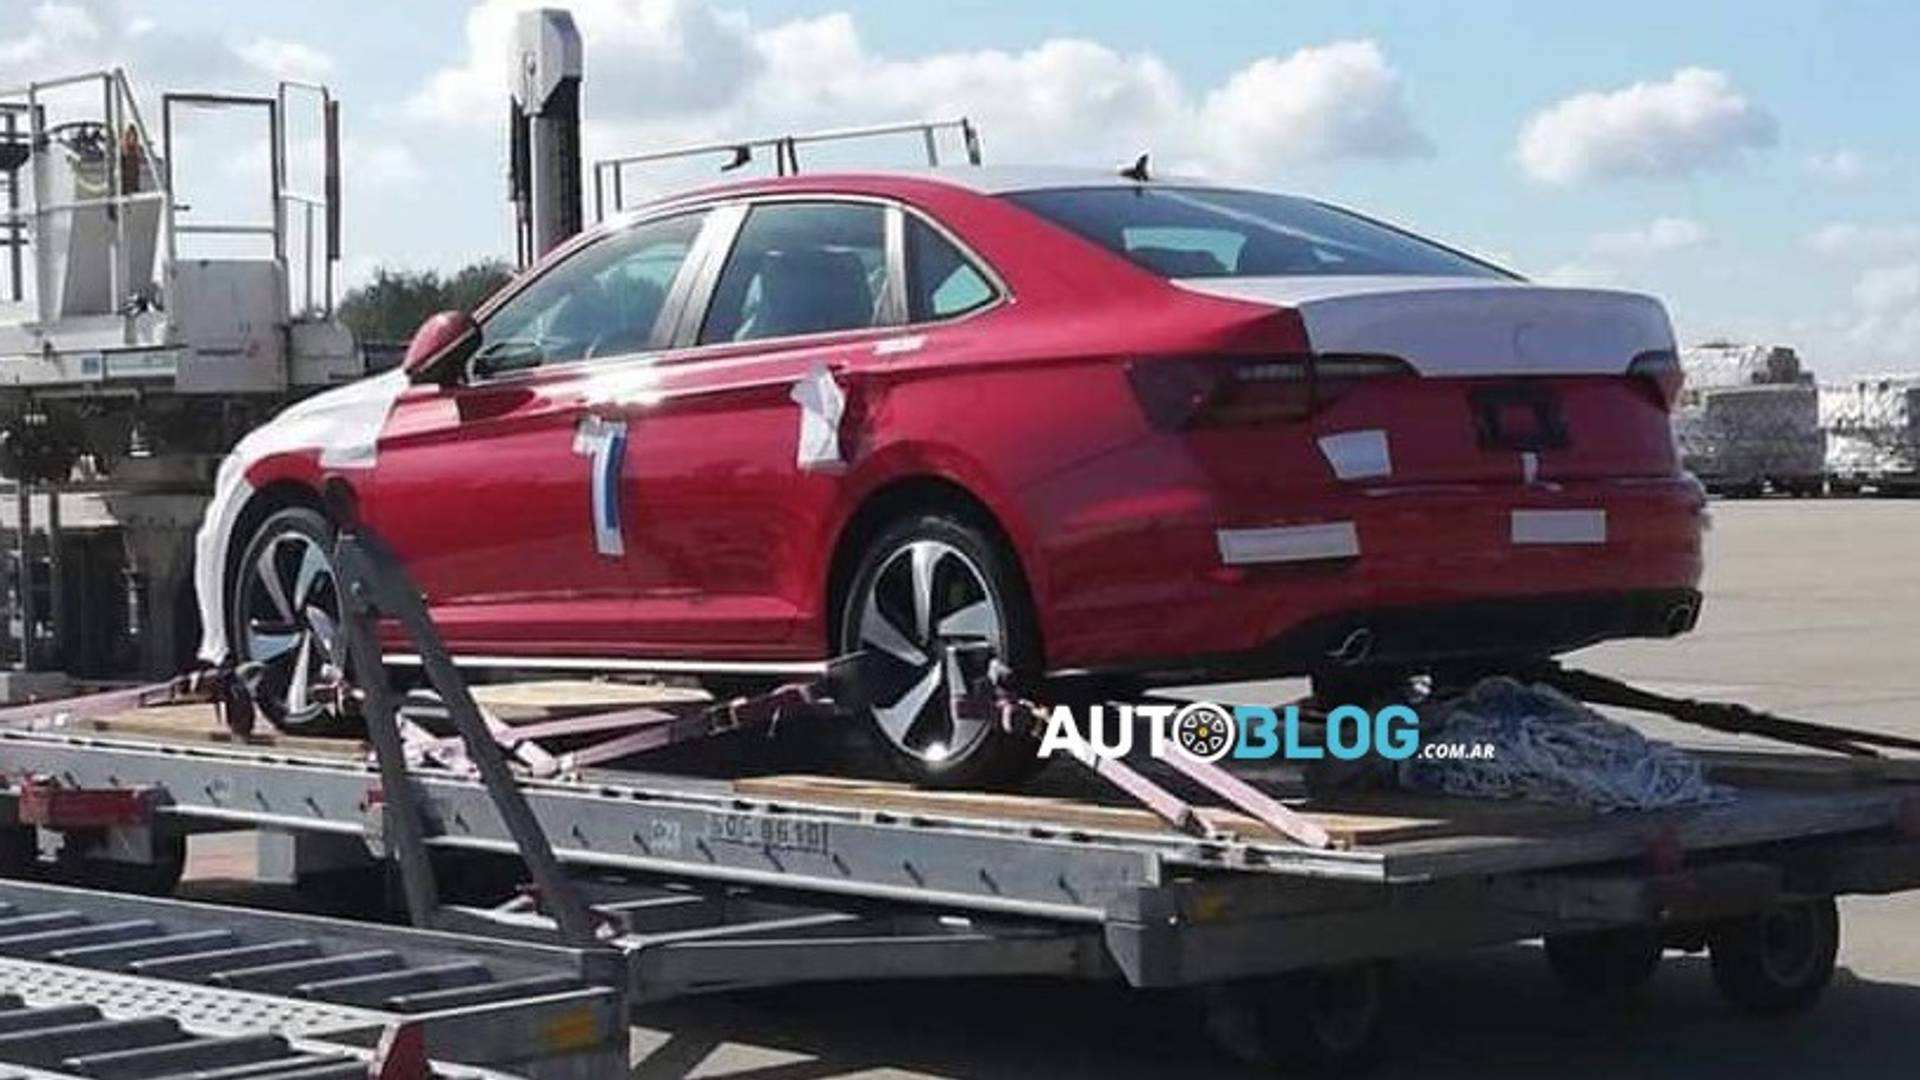 54 All New 2019 Vw Jetta Spy Shots Concept for 2019 Vw Jetta Spy Shots